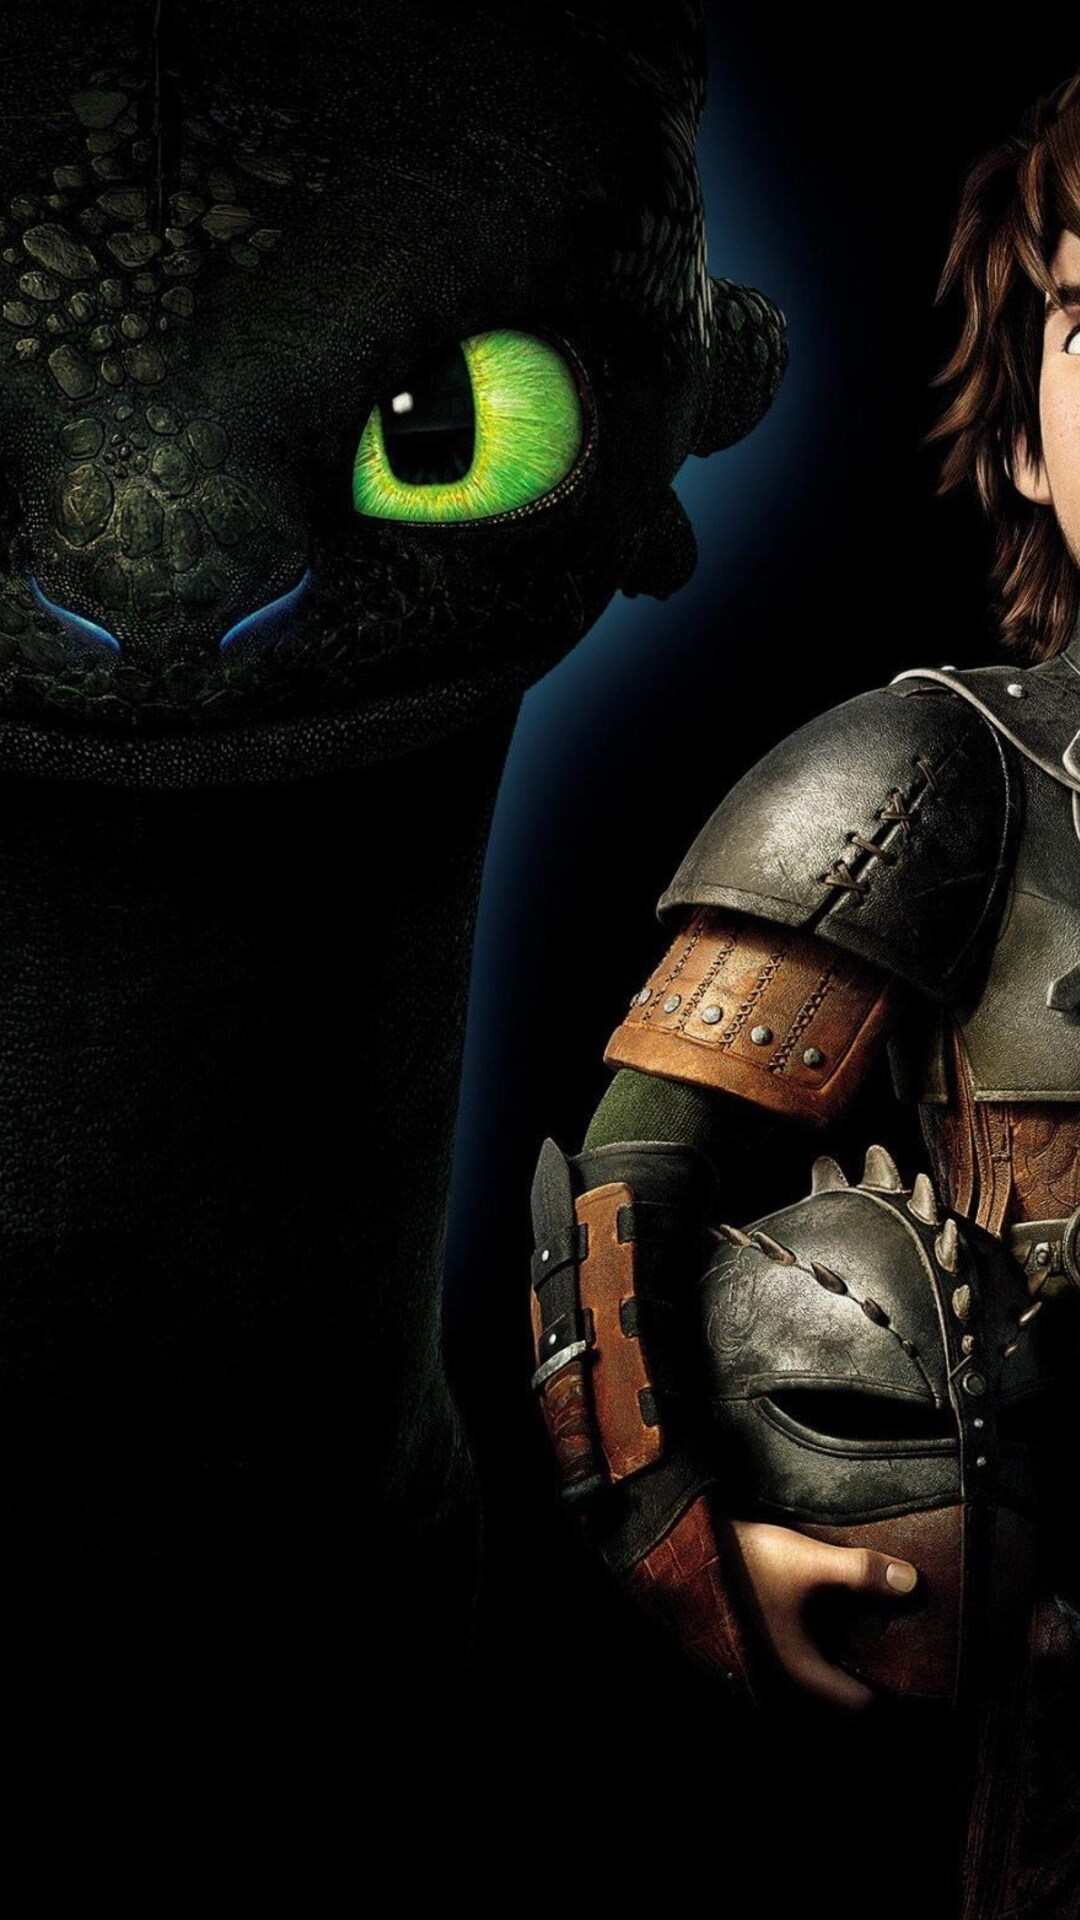 1080x1920 how to train your dragon hd iphone 7 6s 6 plus - How to train your dragon hd download ...